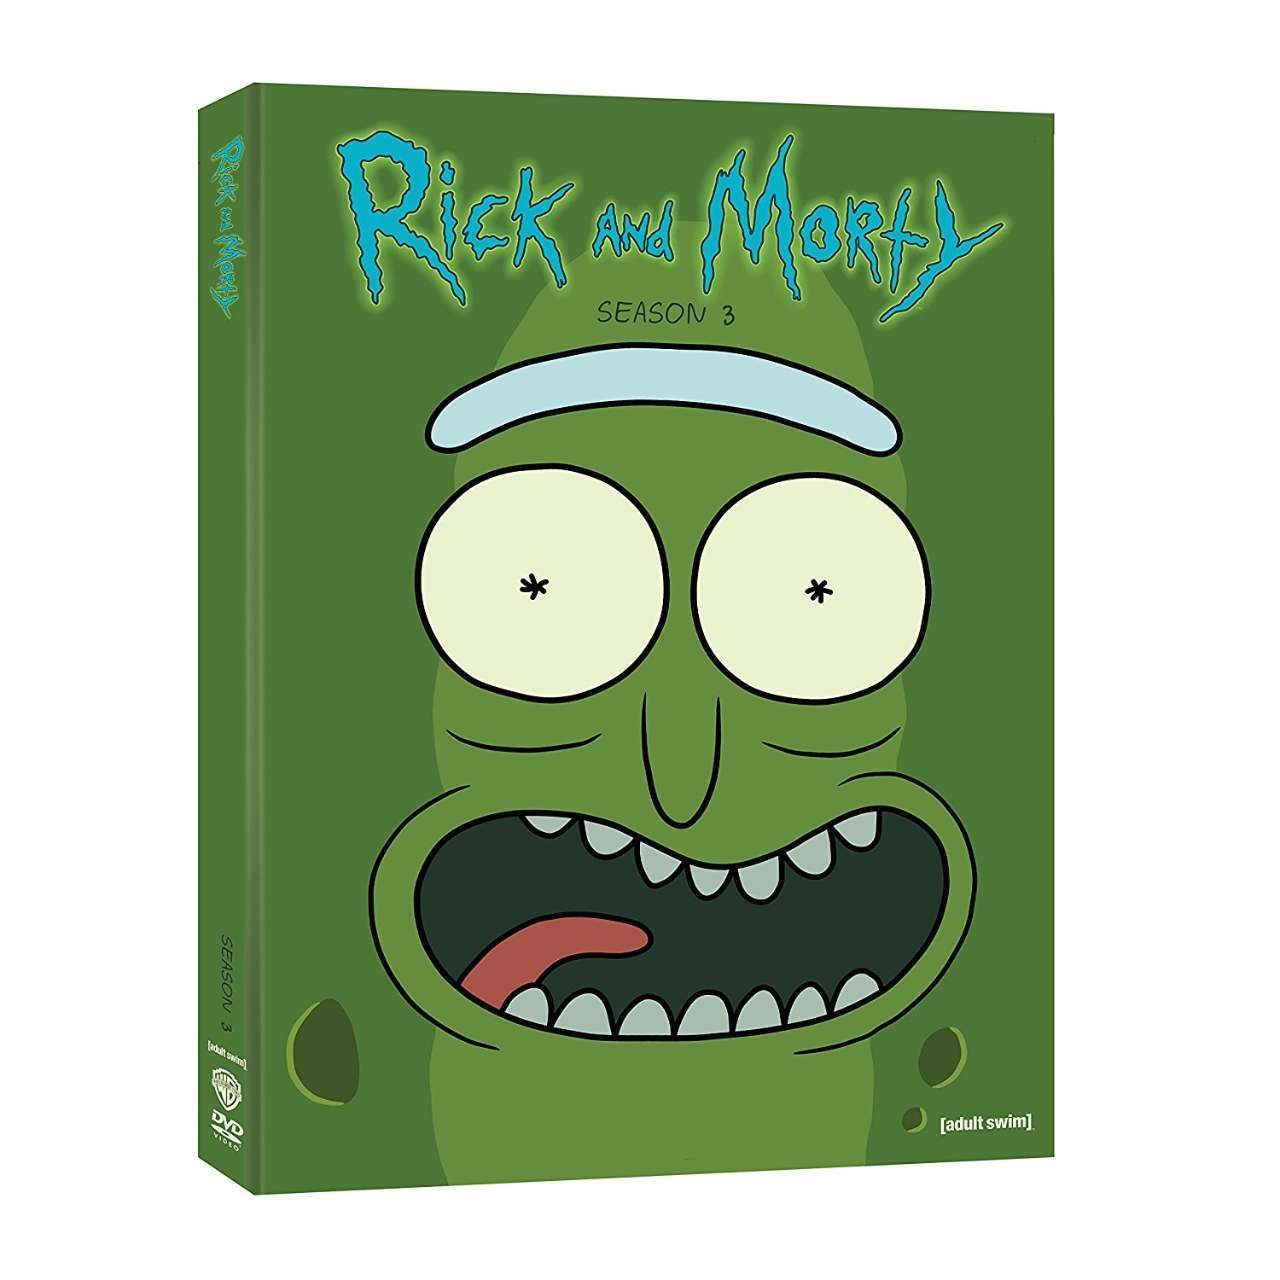 Rick & Morty Season 3 DVD Release Date Revealed on